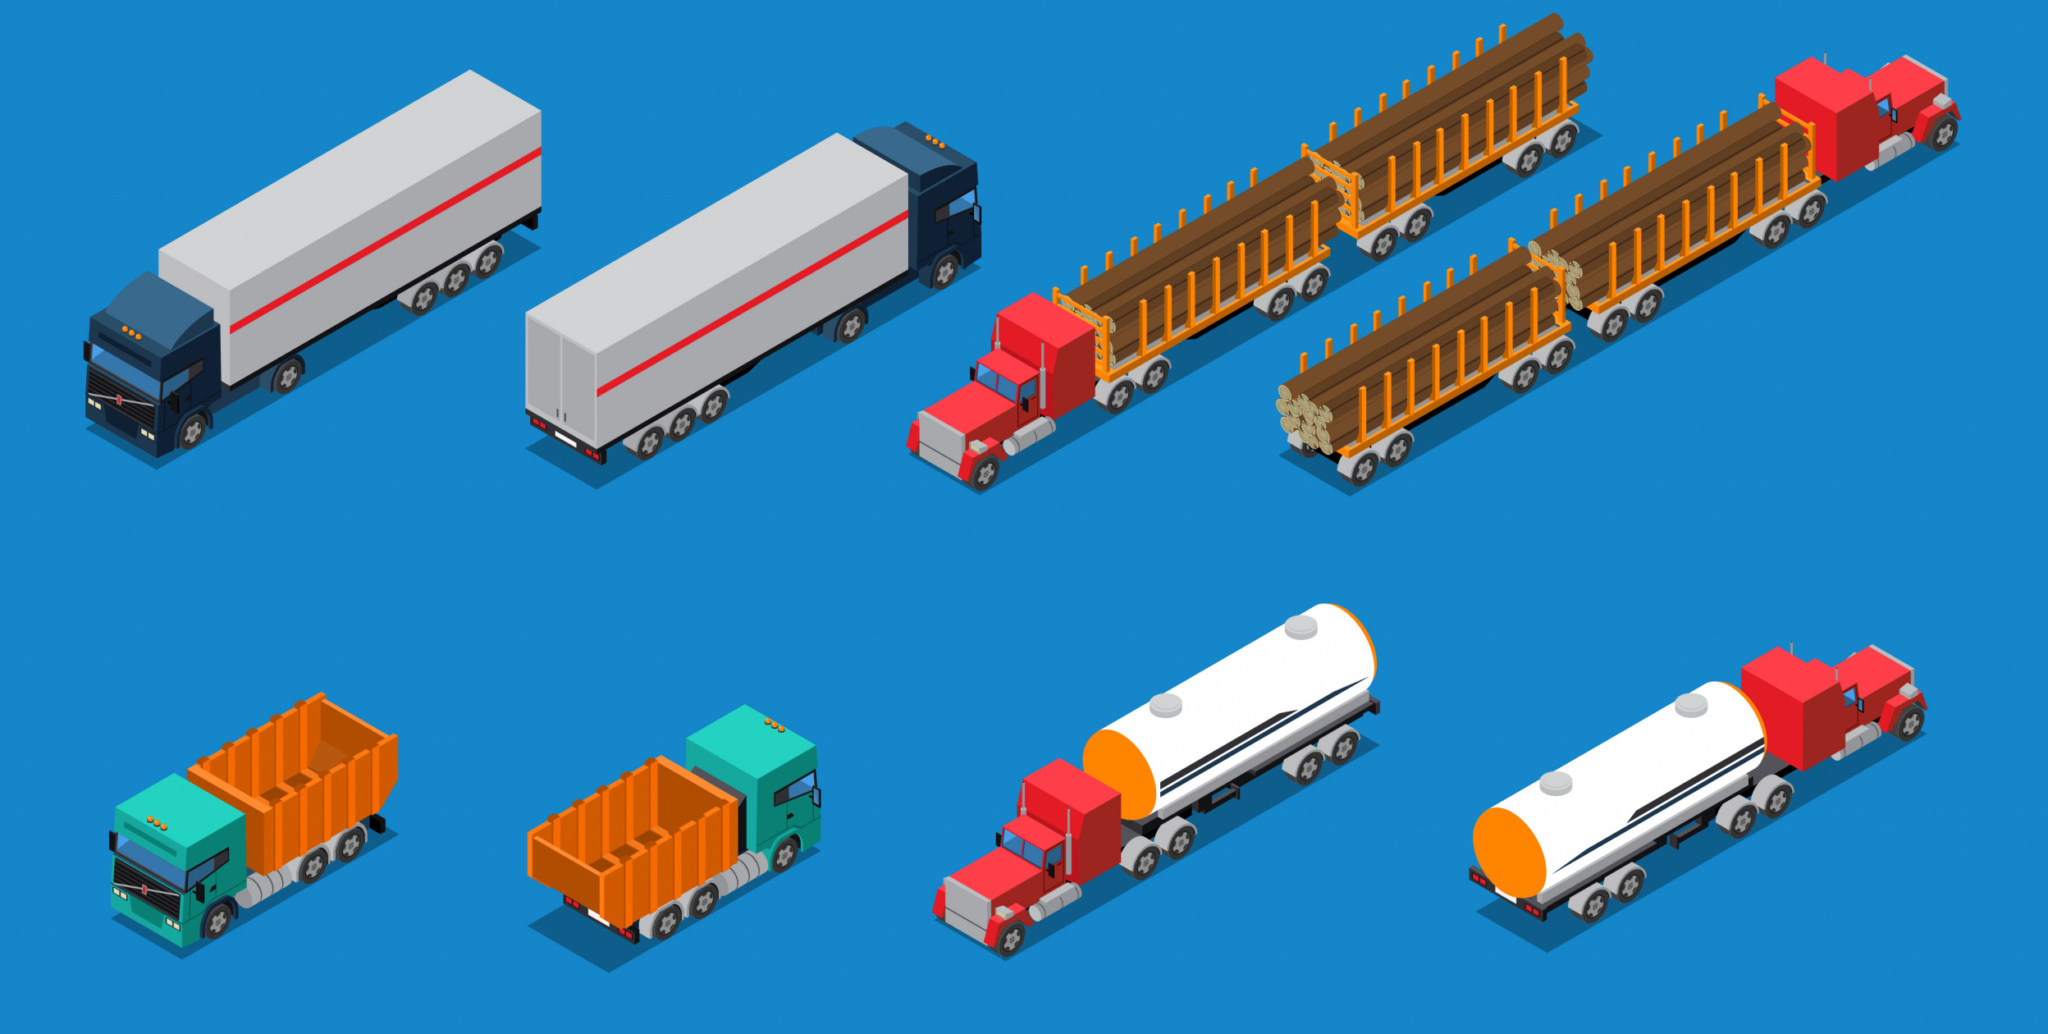 Autel from Agile keeps a wide variety of vehicles and equipment on the road longer